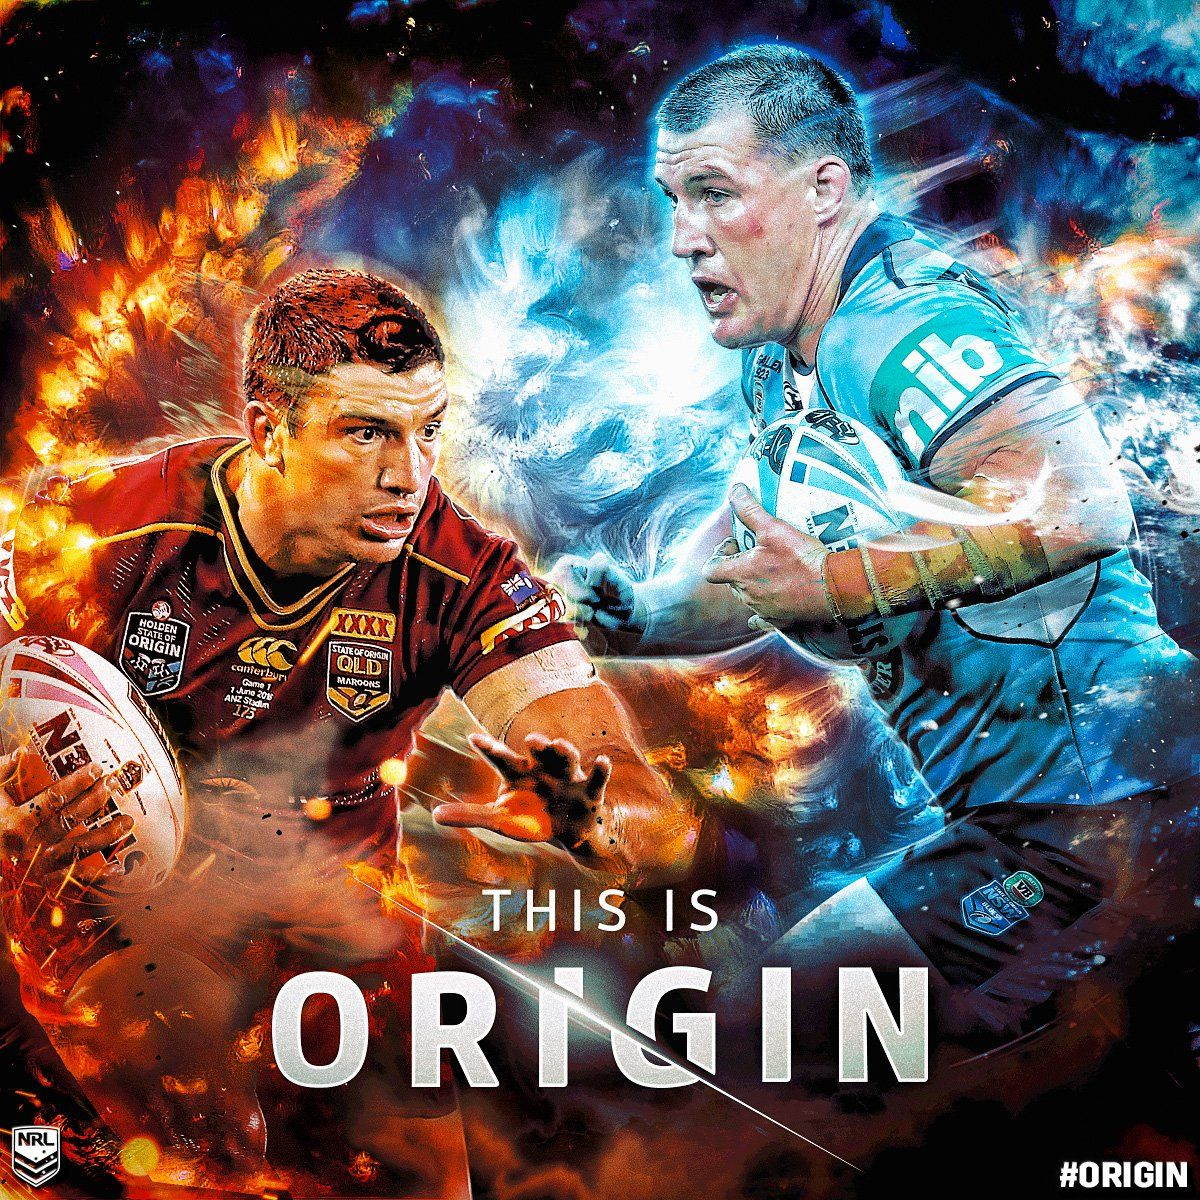 Twitter Moments Can Nsw Square The Origin Series In Queensland The Originals Rugby League Origin Series